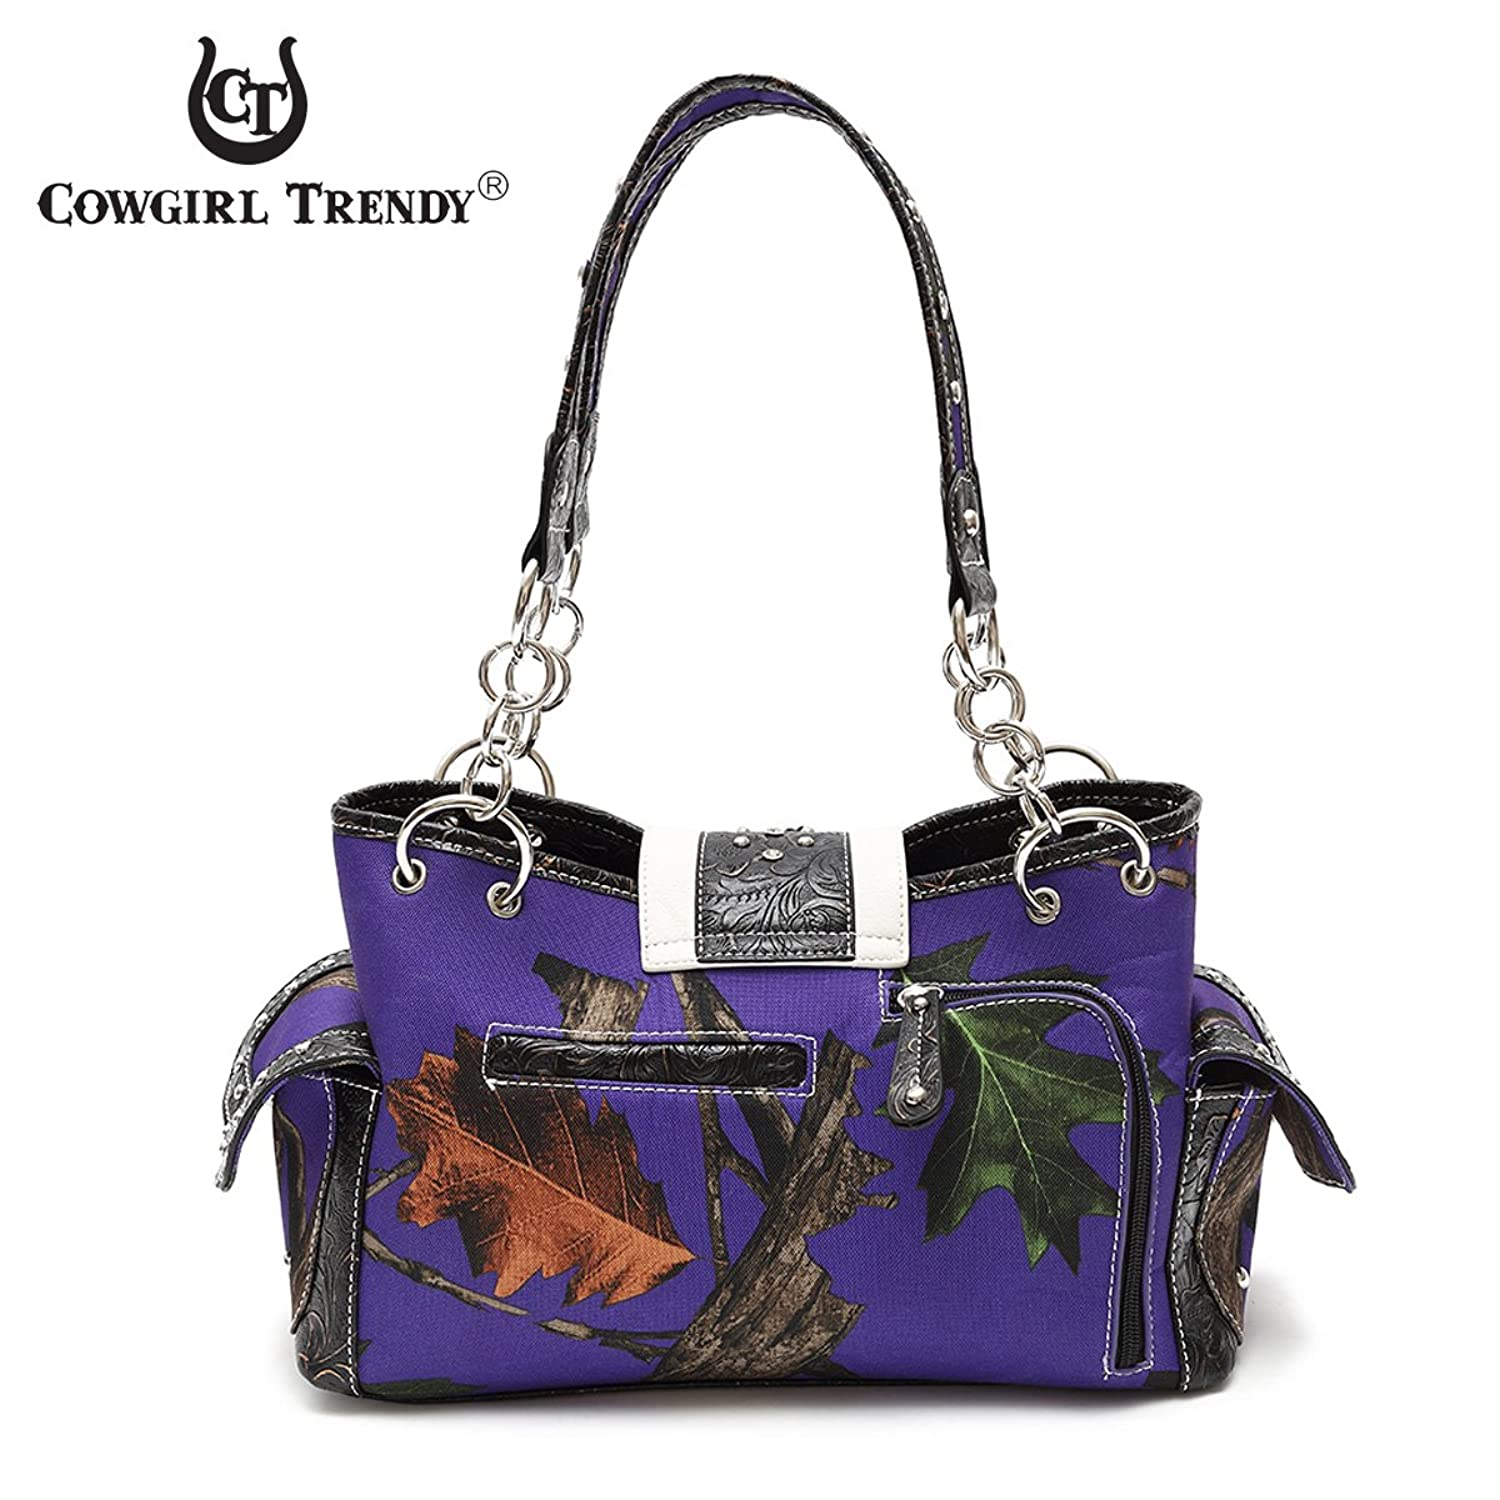 Cowgirl Trendy Western Cross Camouflage Purse Shoulder Bag Handbag Phone Case Wallet Set Black